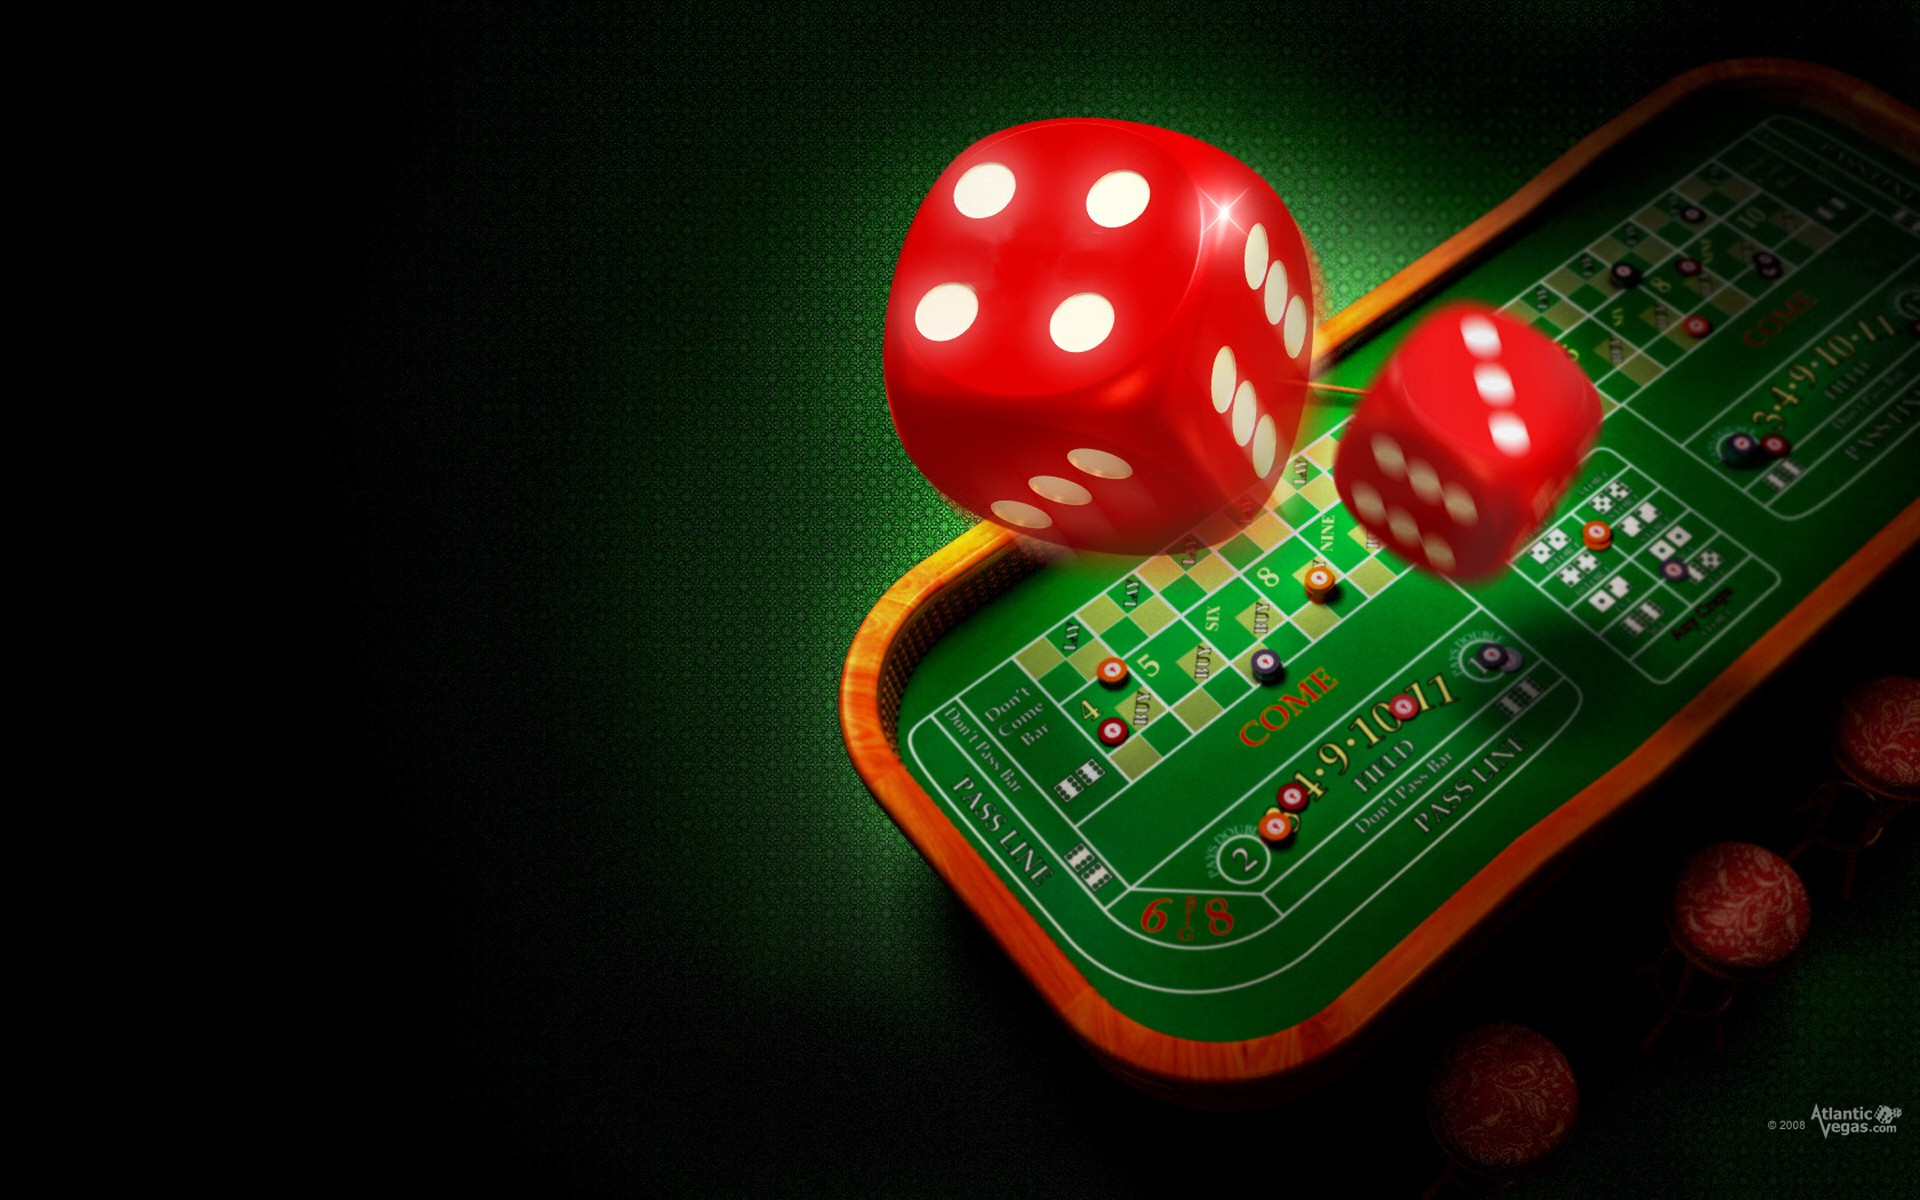 How To Save Cash With Casino?